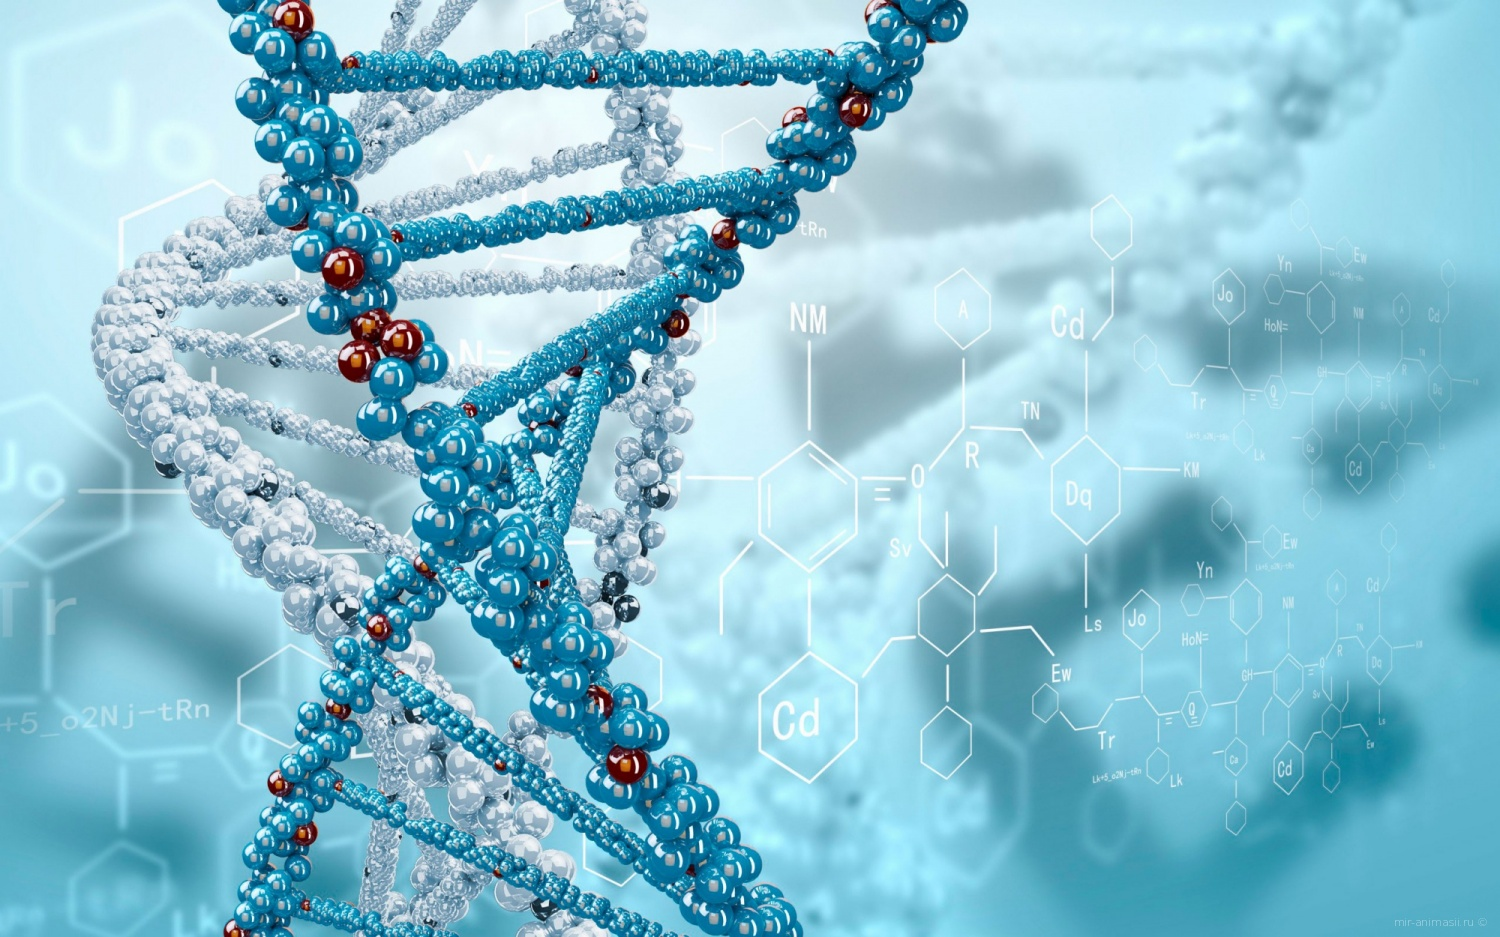 dna research paper How to write a science fair project research paper includes key areas for research and sample papers.